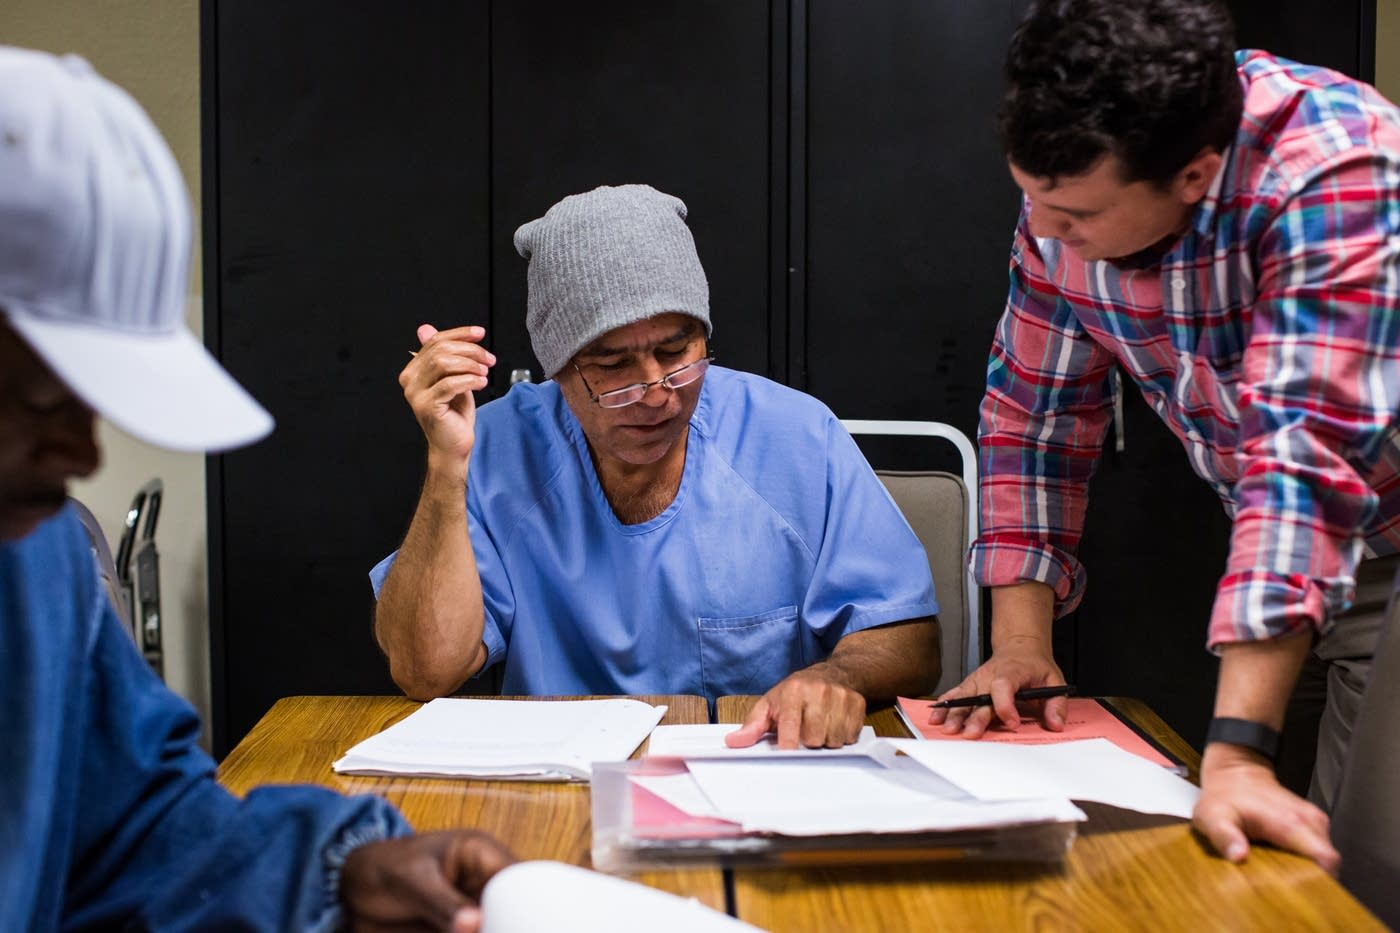 Higher education behind the bars of San Quentin